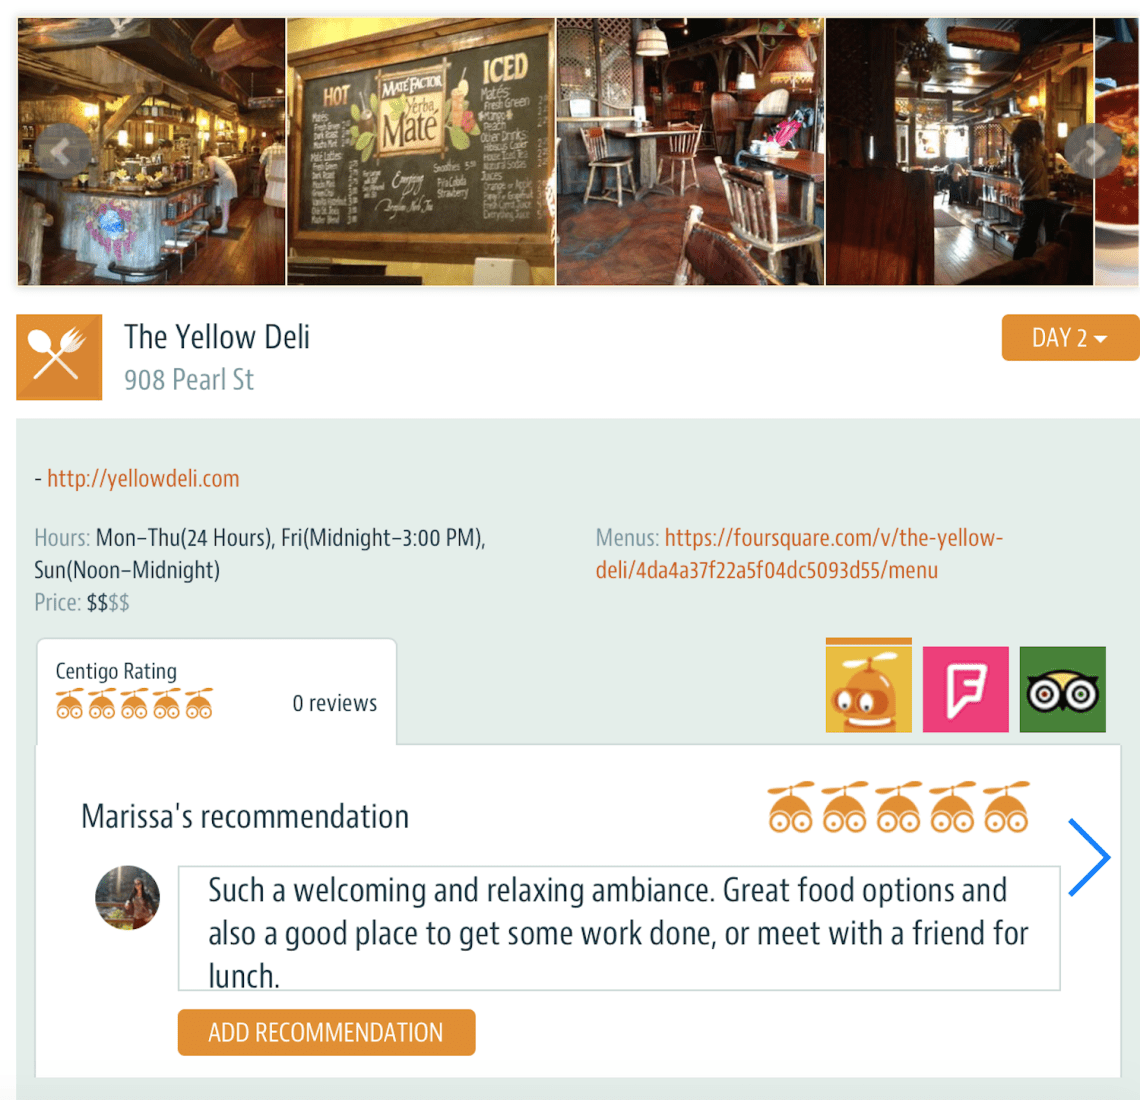 Making trip recommendations on Centrigo